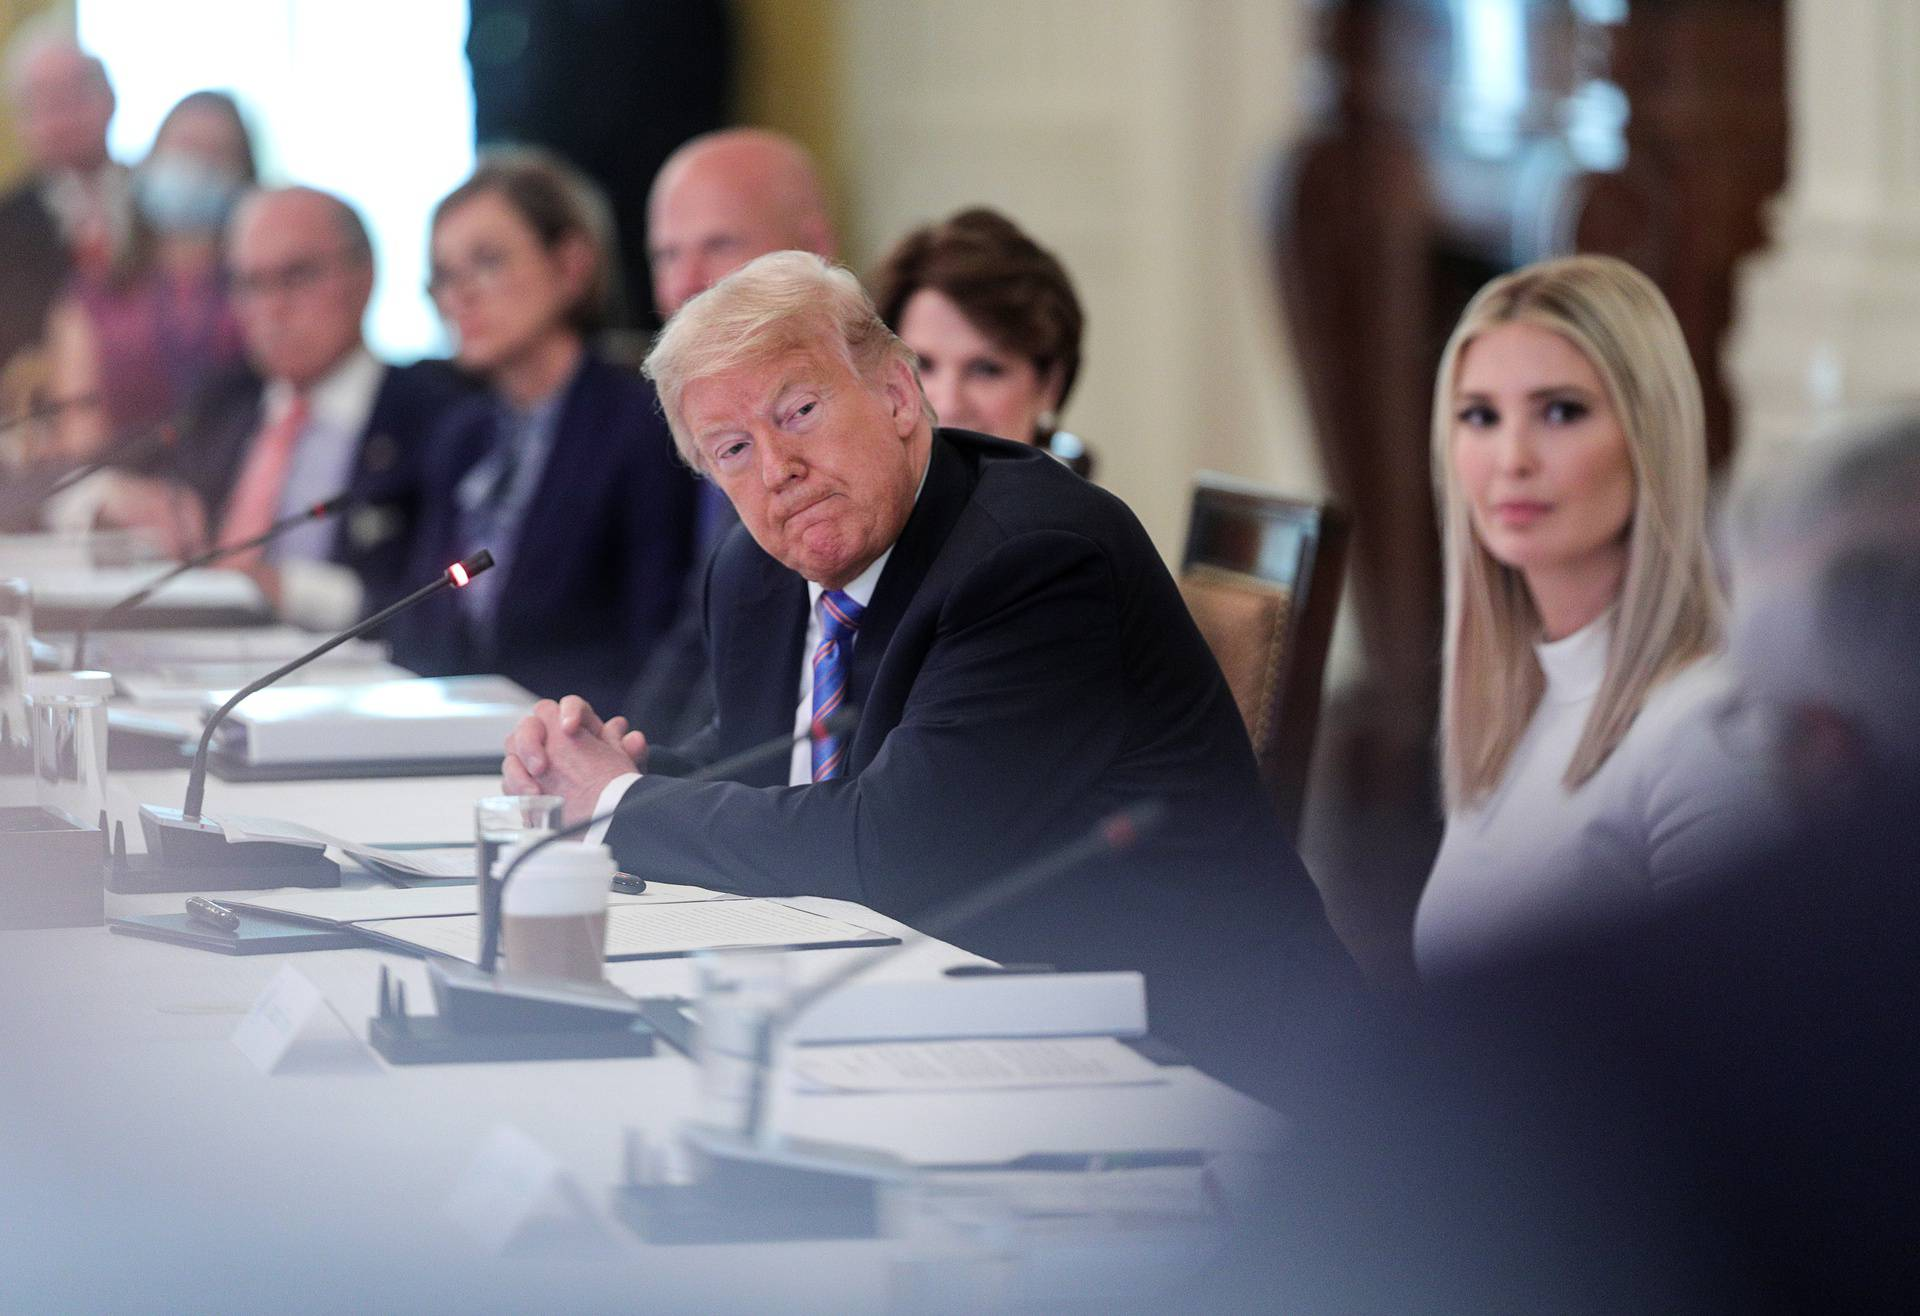 U.S. President Trump hosts workforce advisory board meeting at the White House in Washington